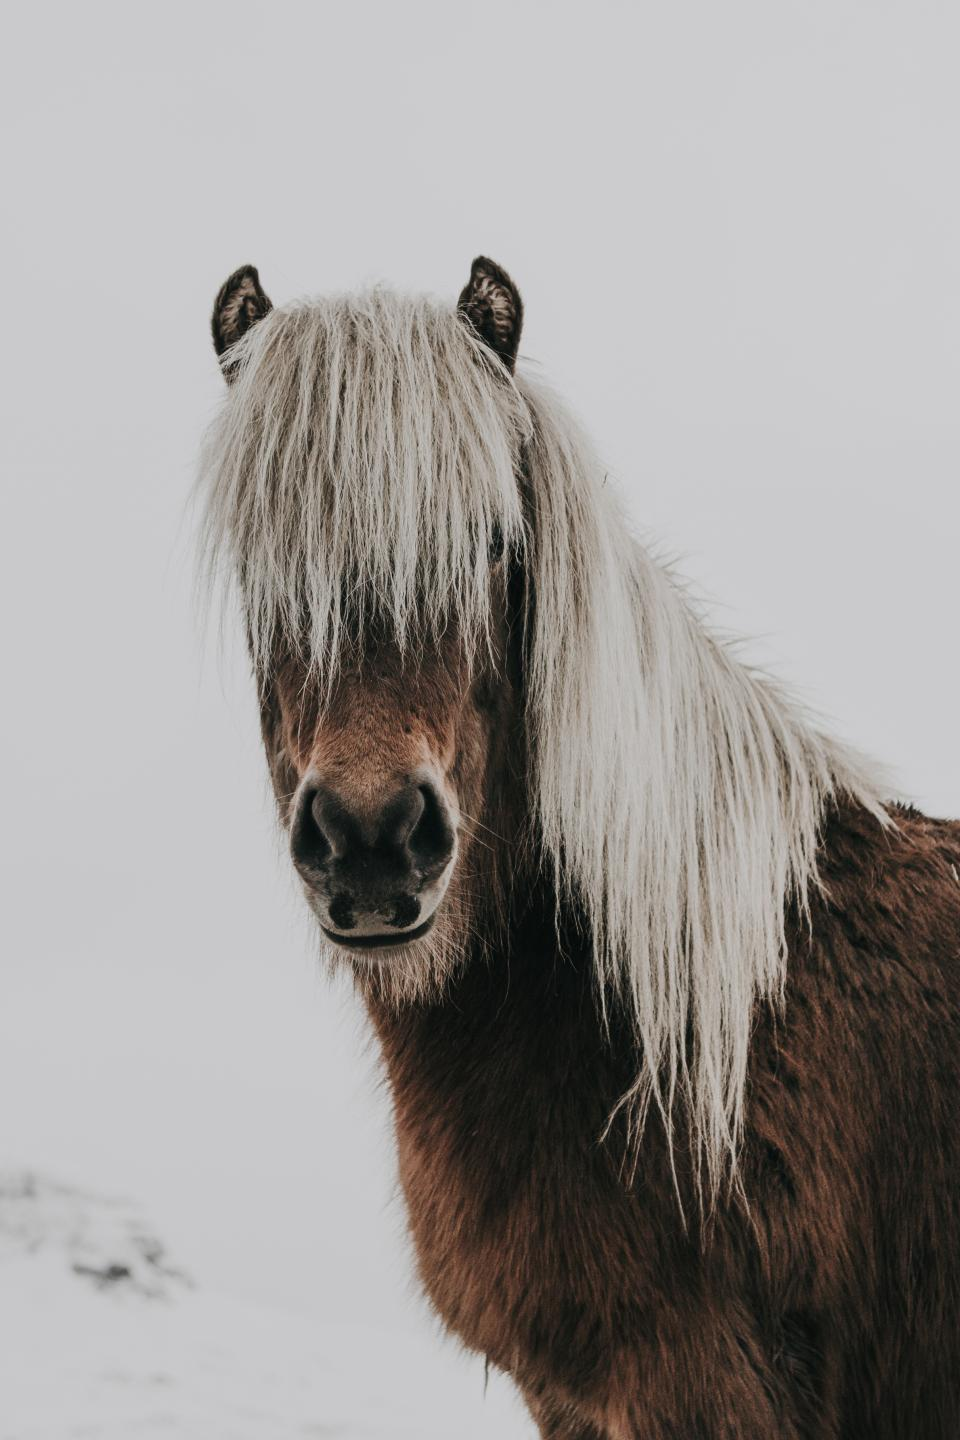 horse, animal, brown, white, snow, winter, cold, weather, hair